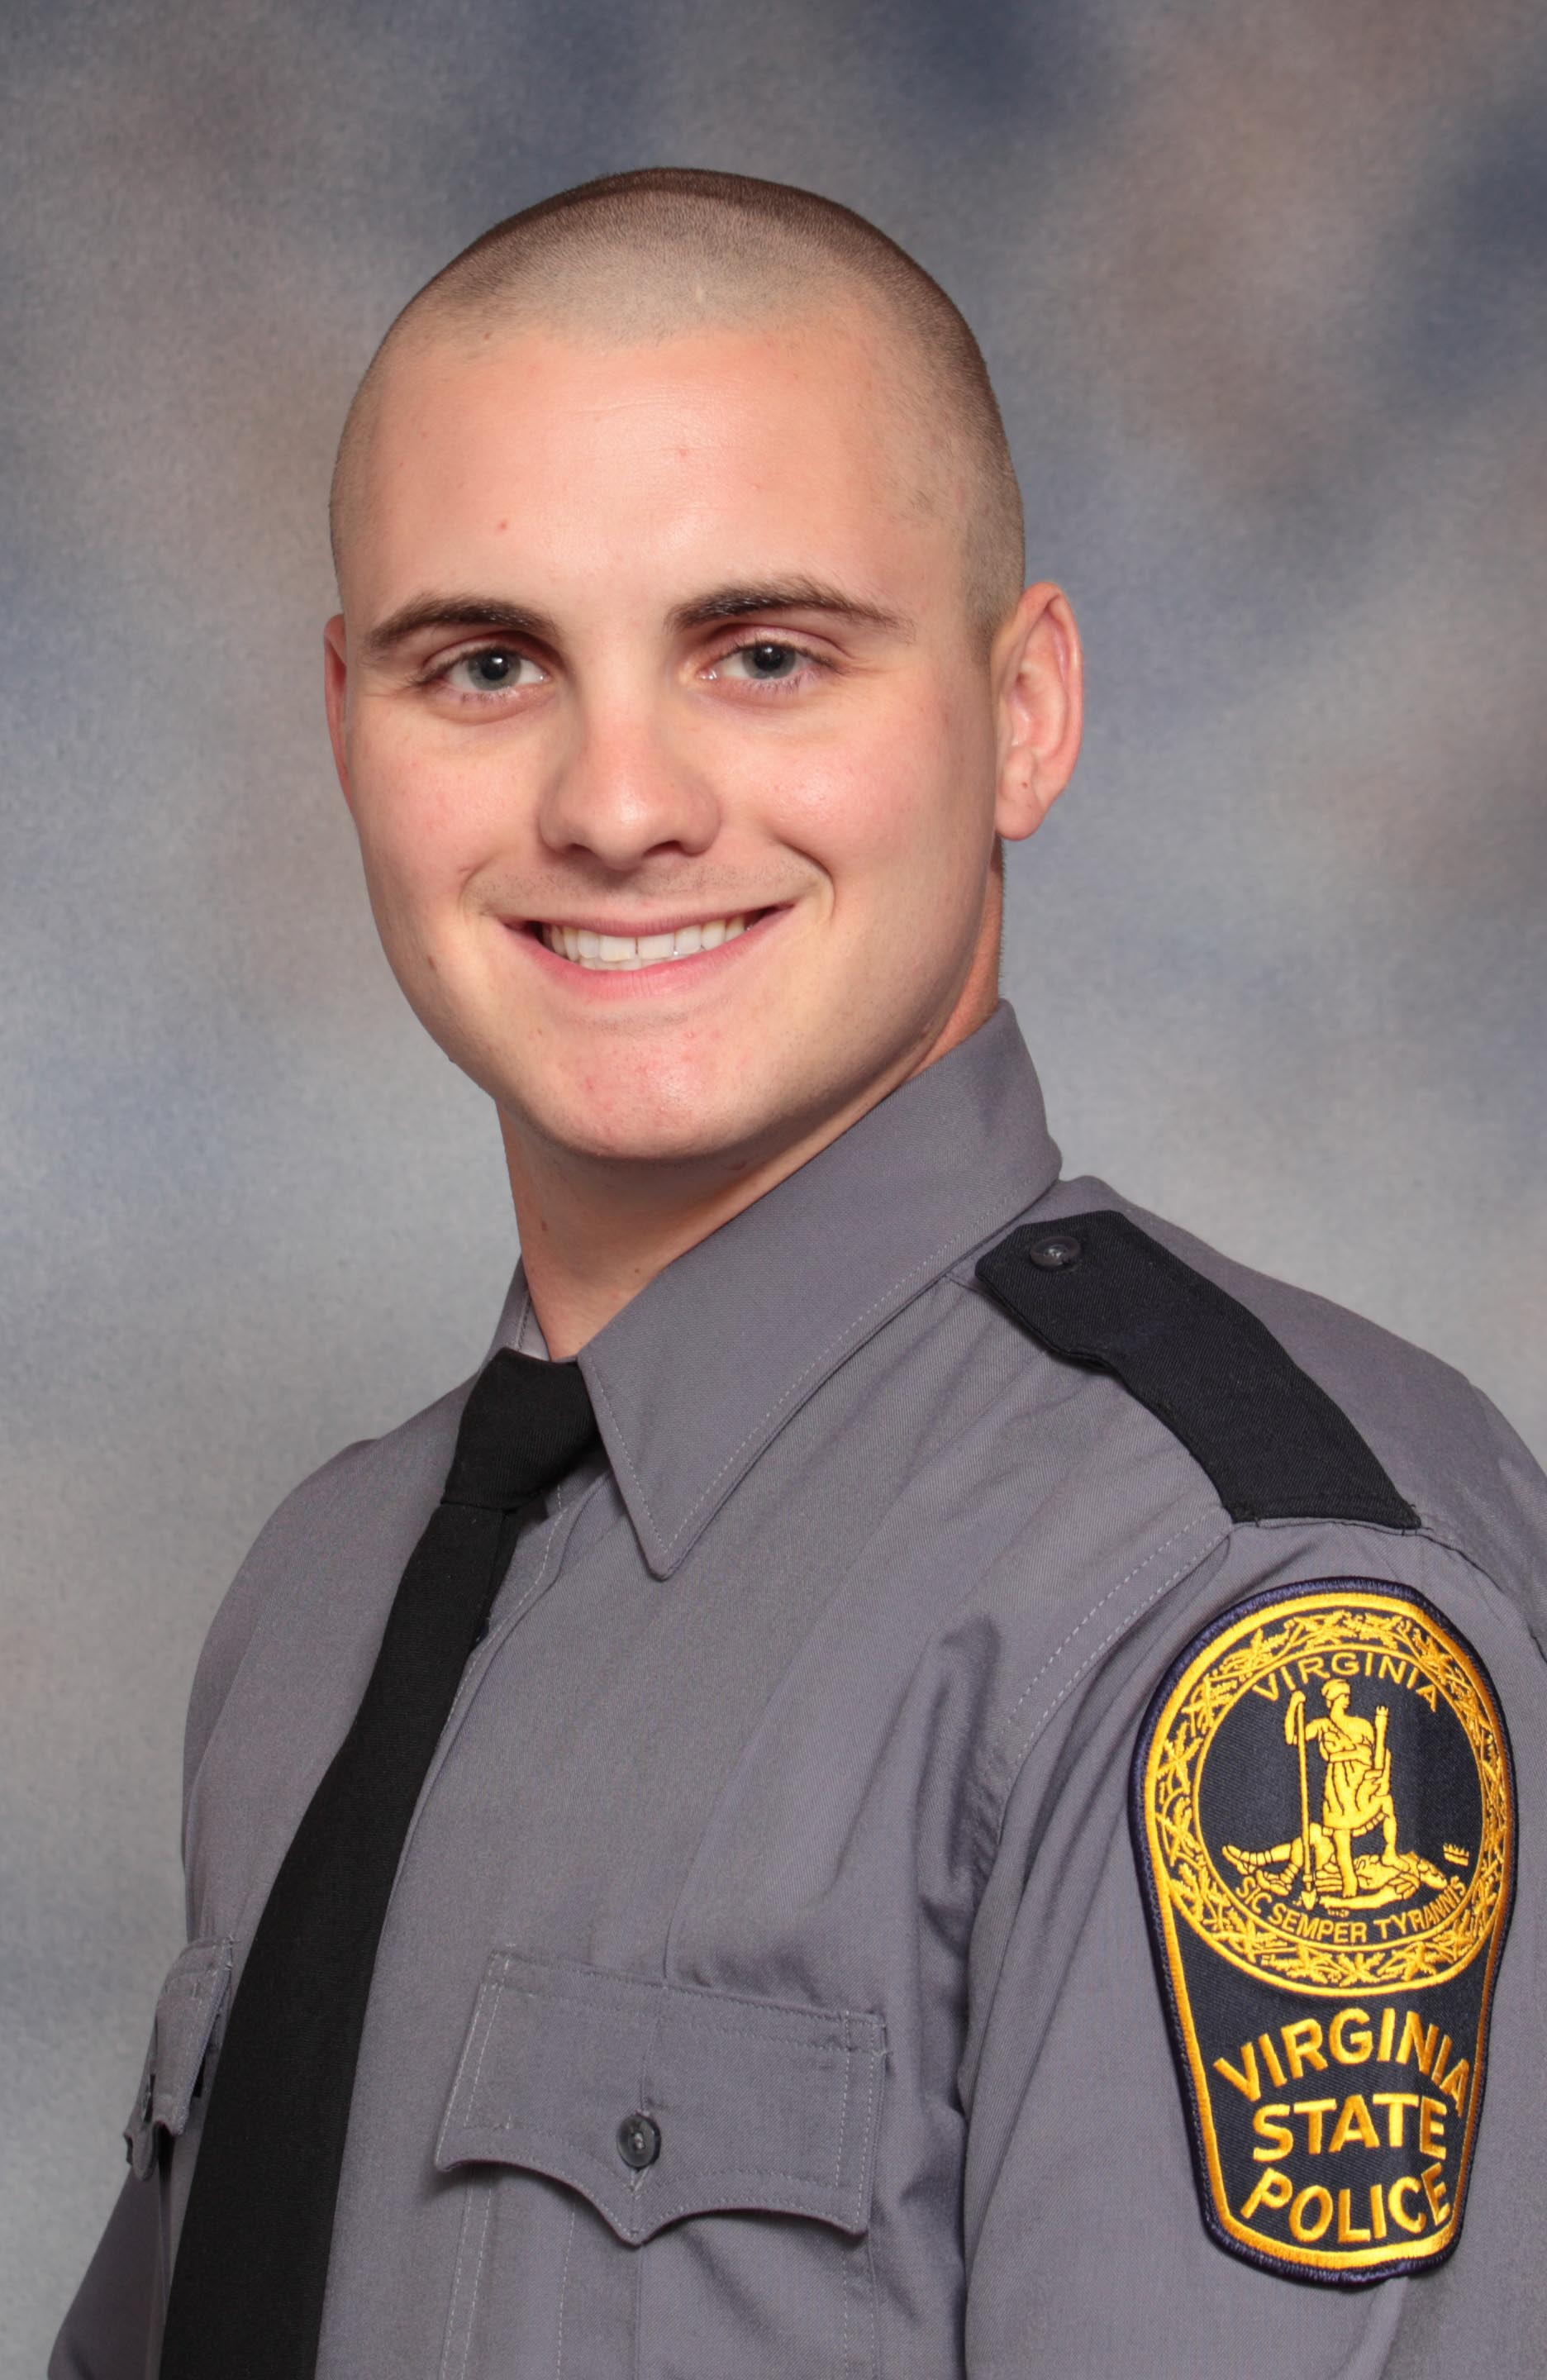 Virginia state trooper fatally shot while helping to execute a